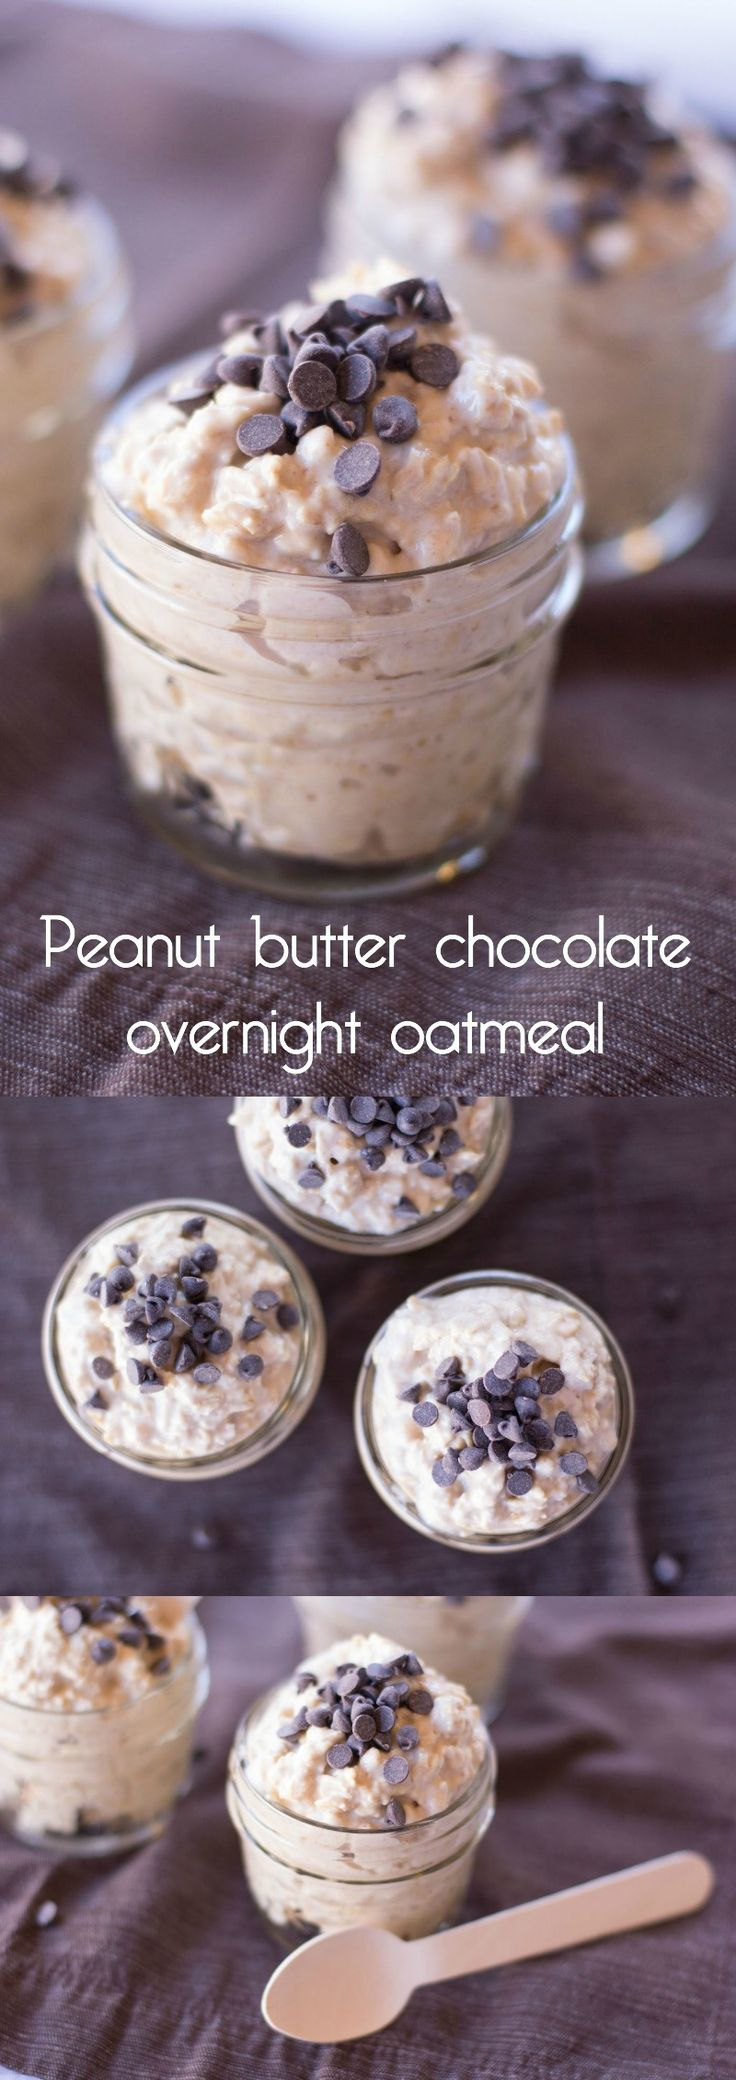 If you love overnight oatmeal, this peanut butter recipe uses PB2 so it's delicious with none of the guilt! Add chocolate chips for a sweet little treat. via @diy_candy